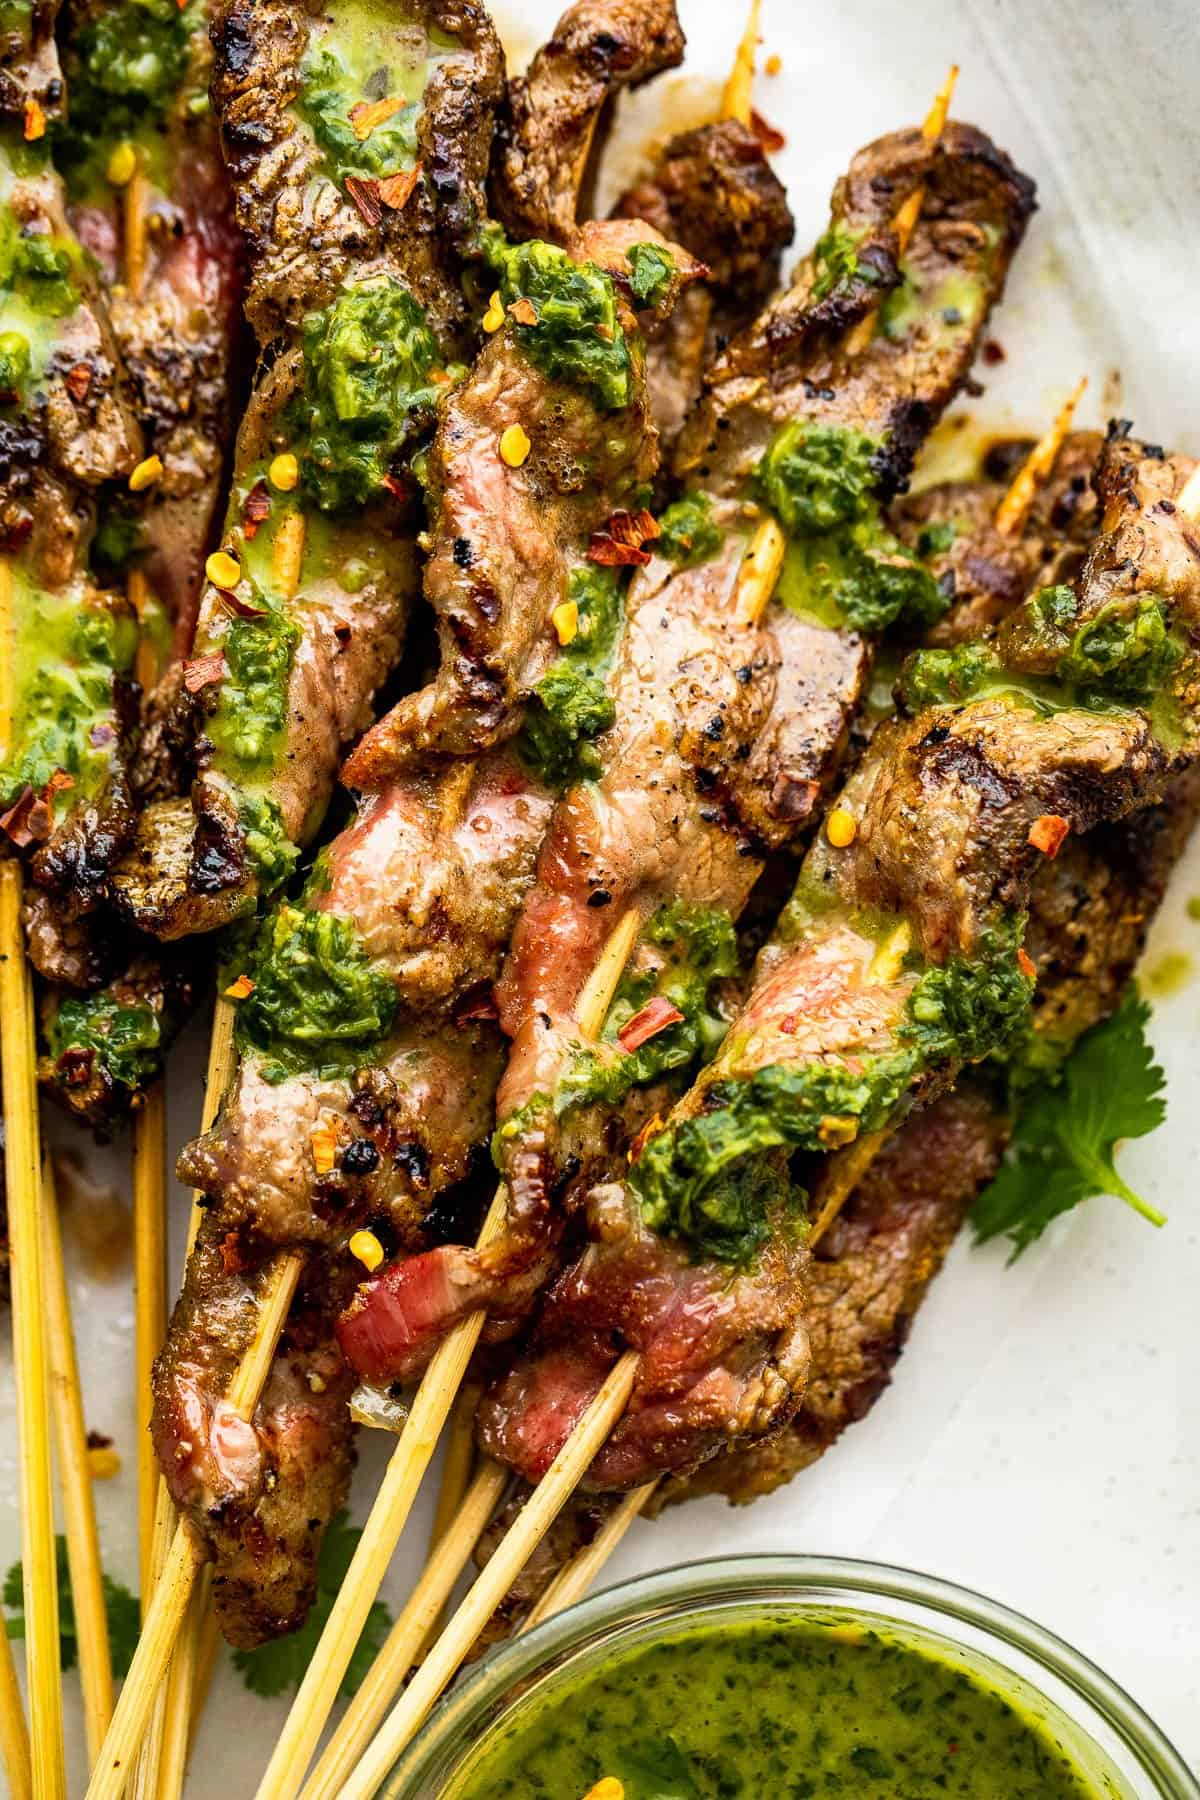 eight Grilled Steak Skewers served on a plate and topped with chimichurri sauce